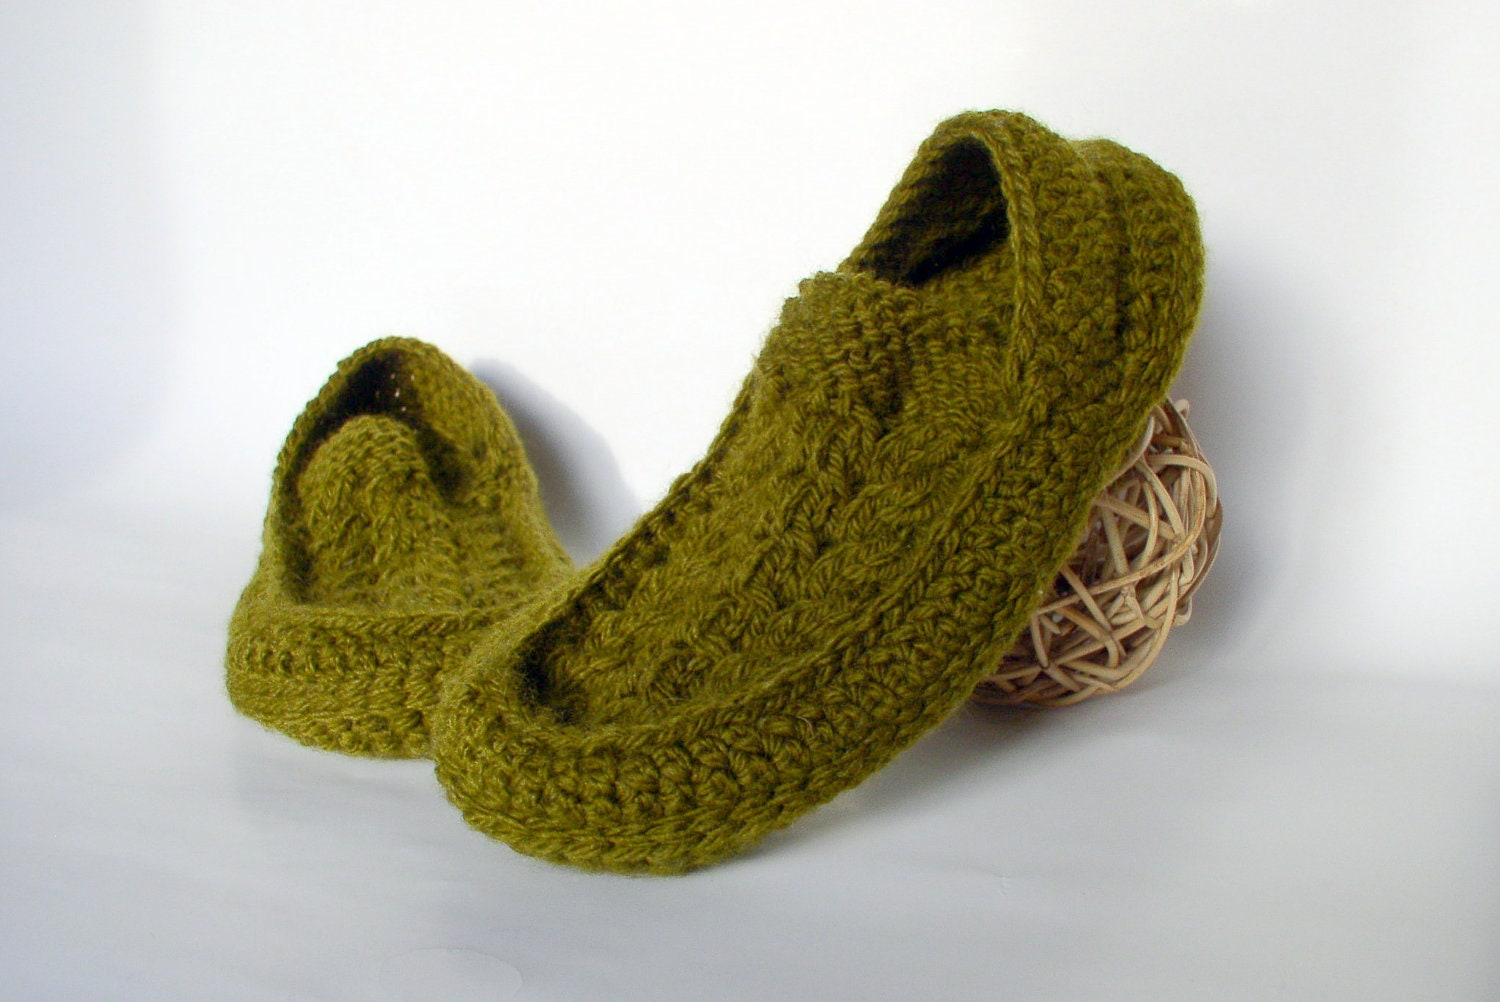 Mens Slippers Knitting Pattern : Mens Knit Crochet Socks/Slippers with Cables Motifs Hand